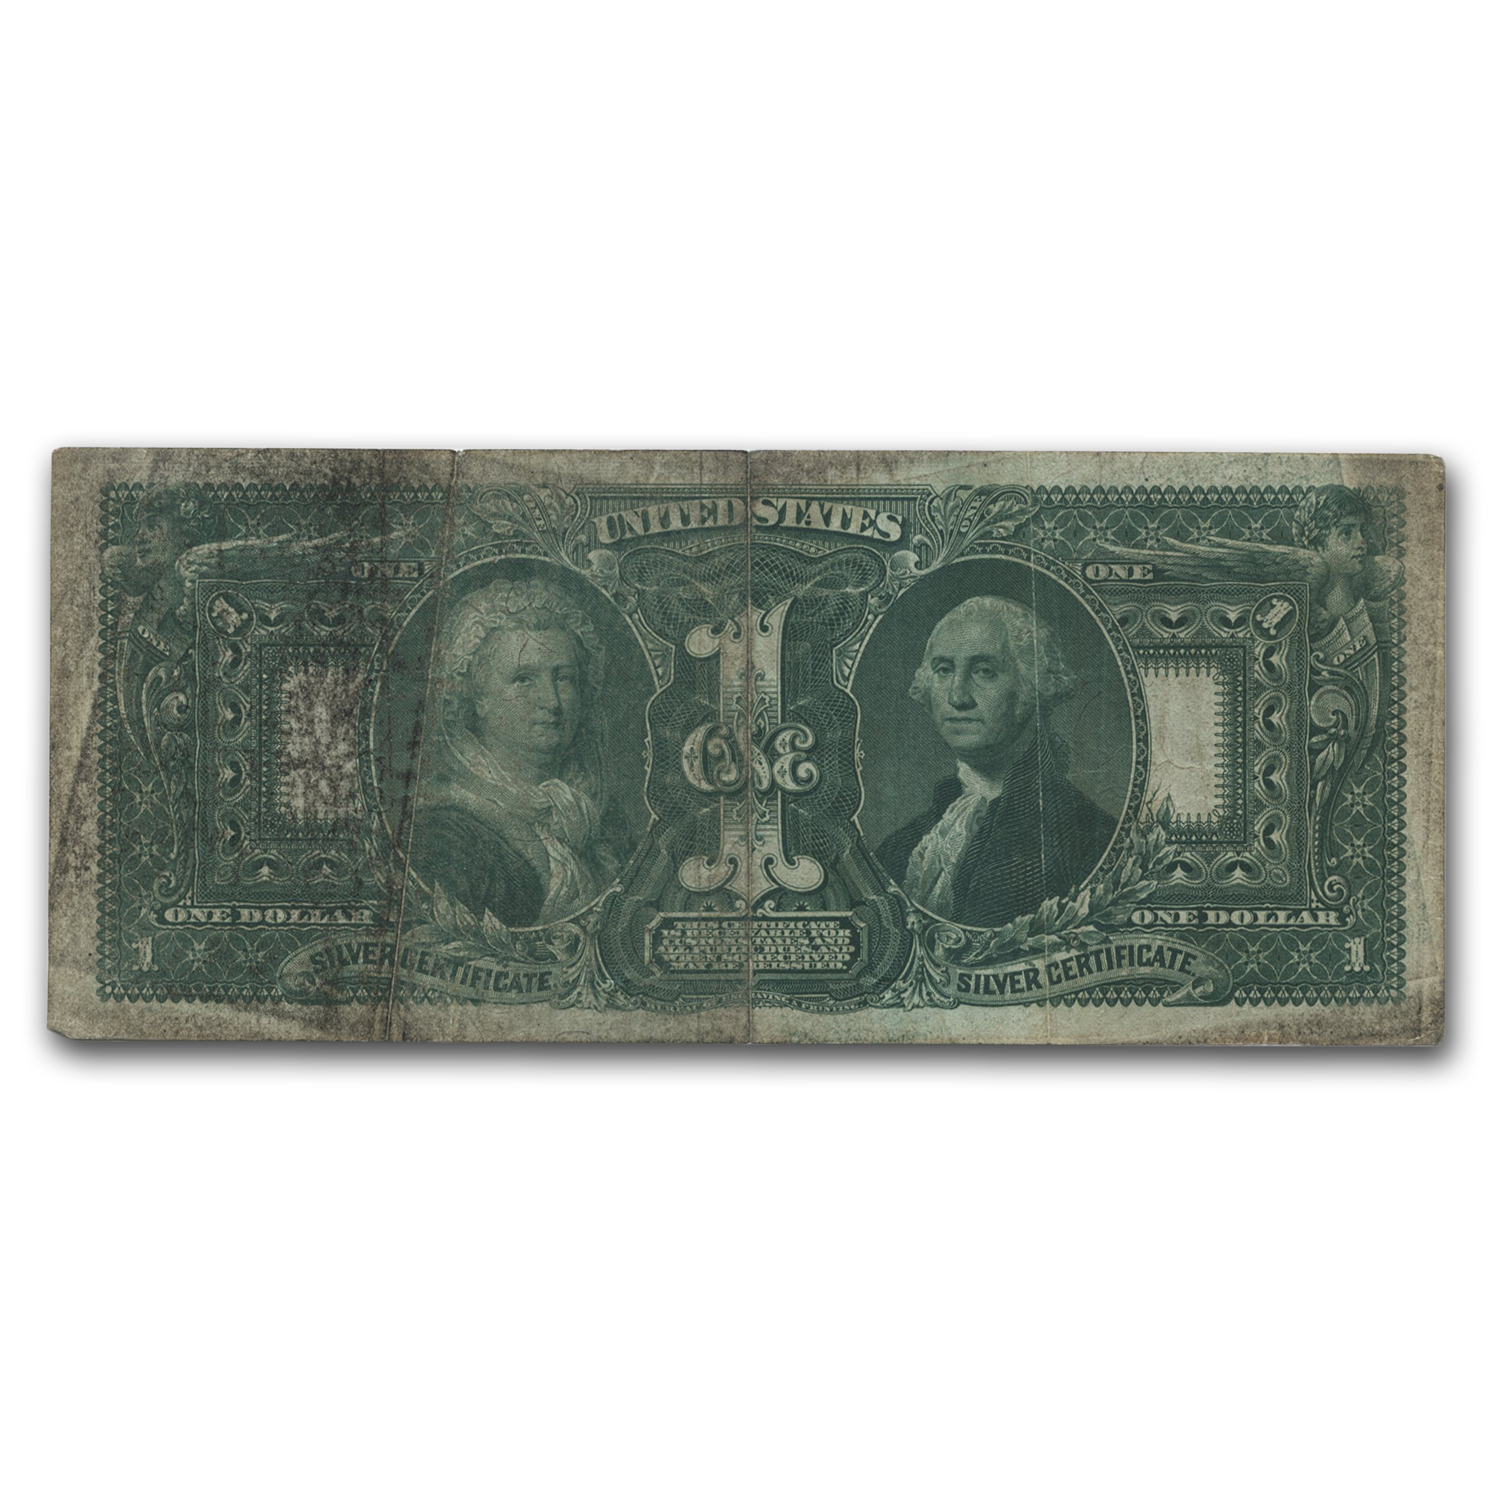 1896 $1.00 Silver Certificate Educational Note  (Very Fine)